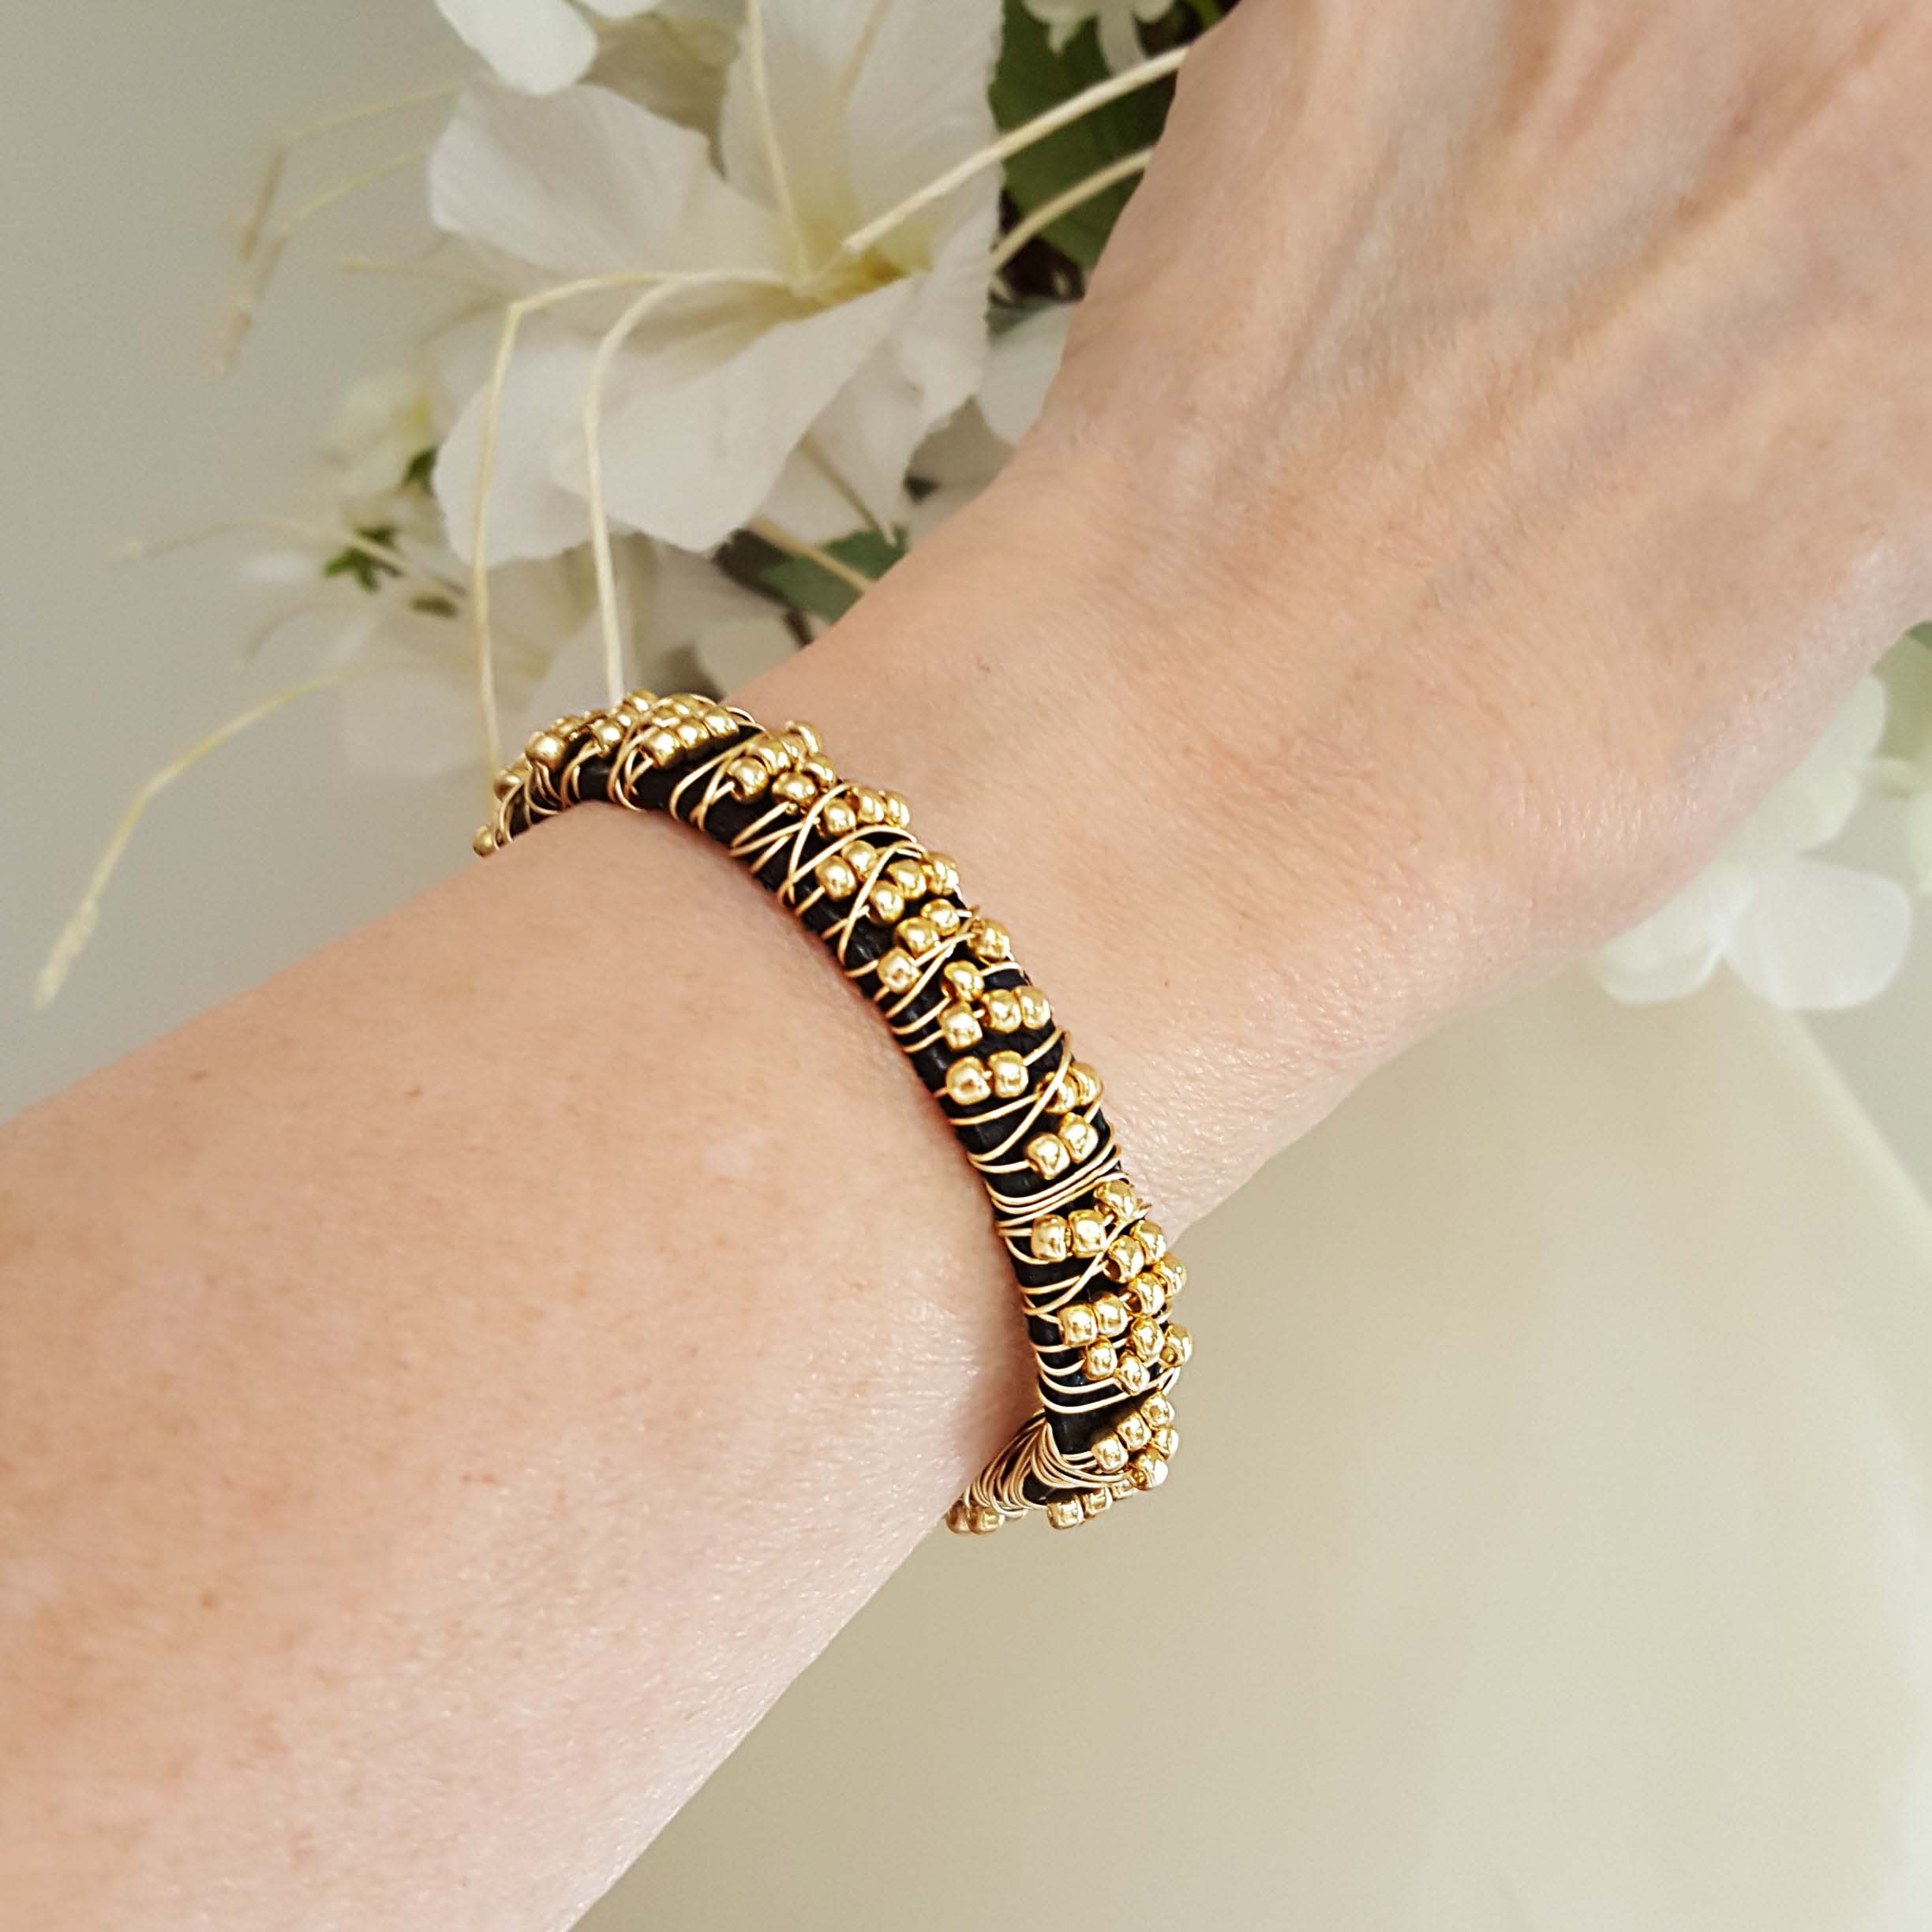 Wire Wrapped Beaded Bracelet Gold Beads - Wrap Your Style